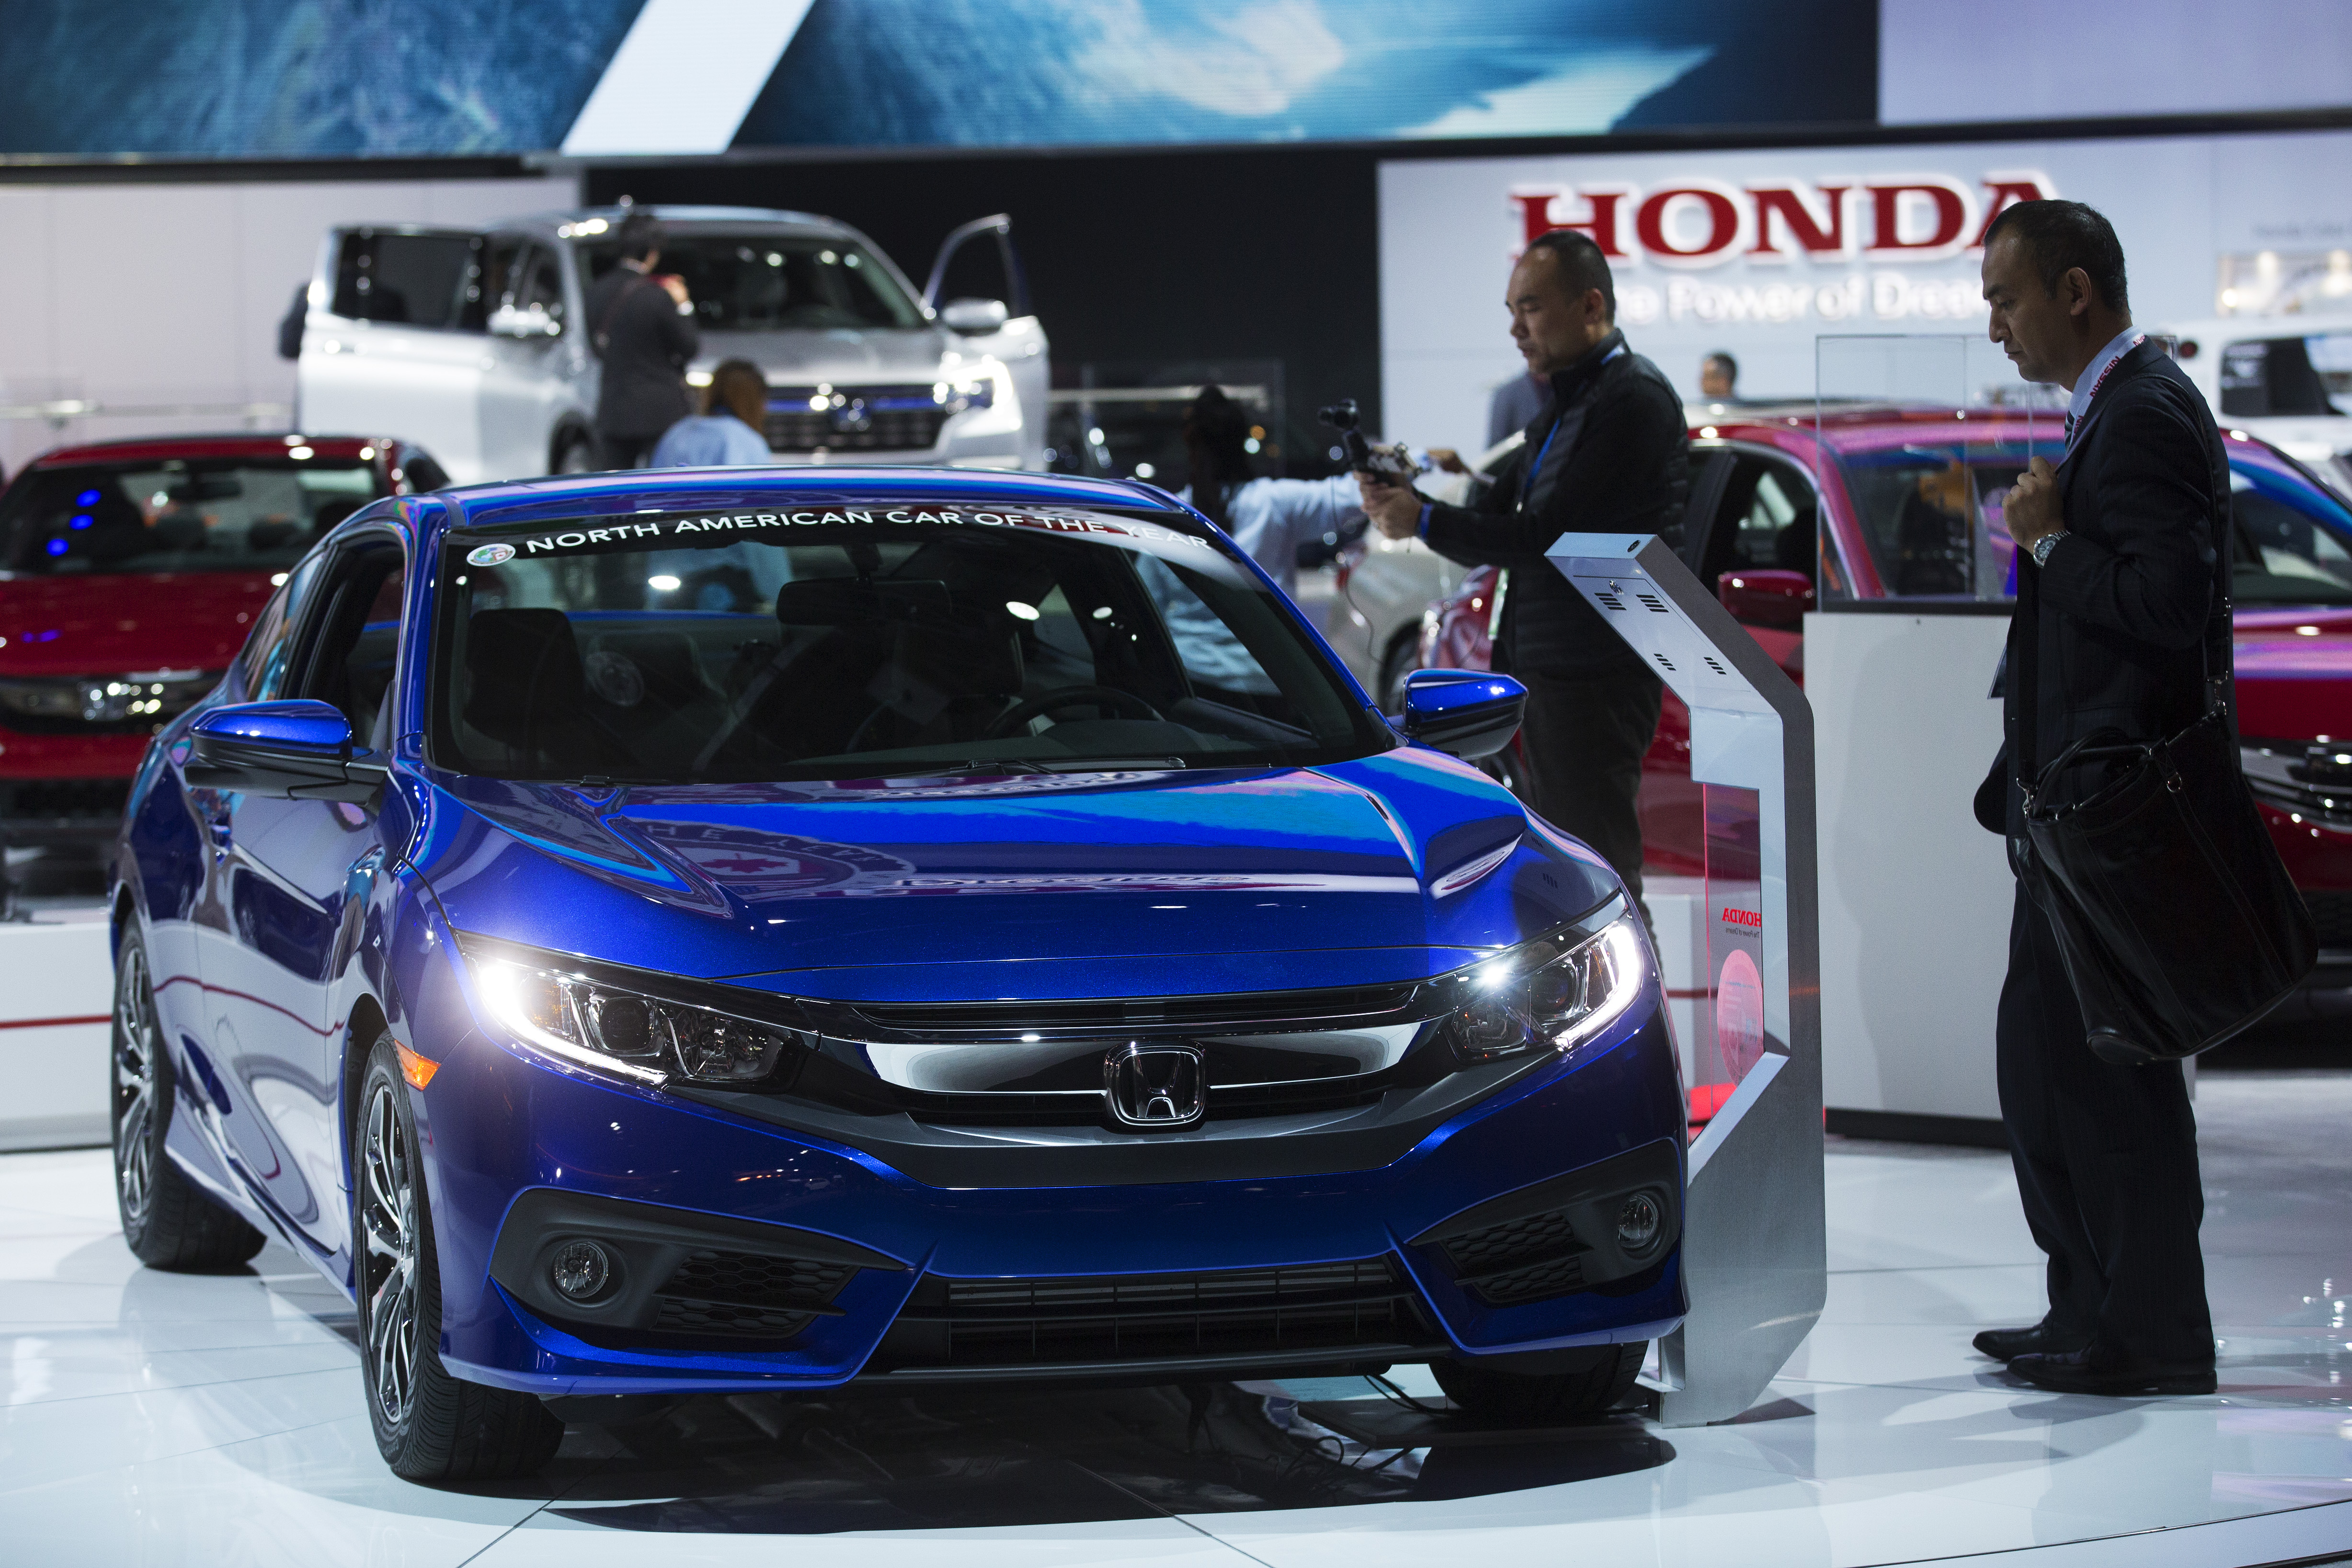 Cheap Used Automatic Cars for Sale Near Me Unique Honda S New Self Driving Car Costs Only $20 000